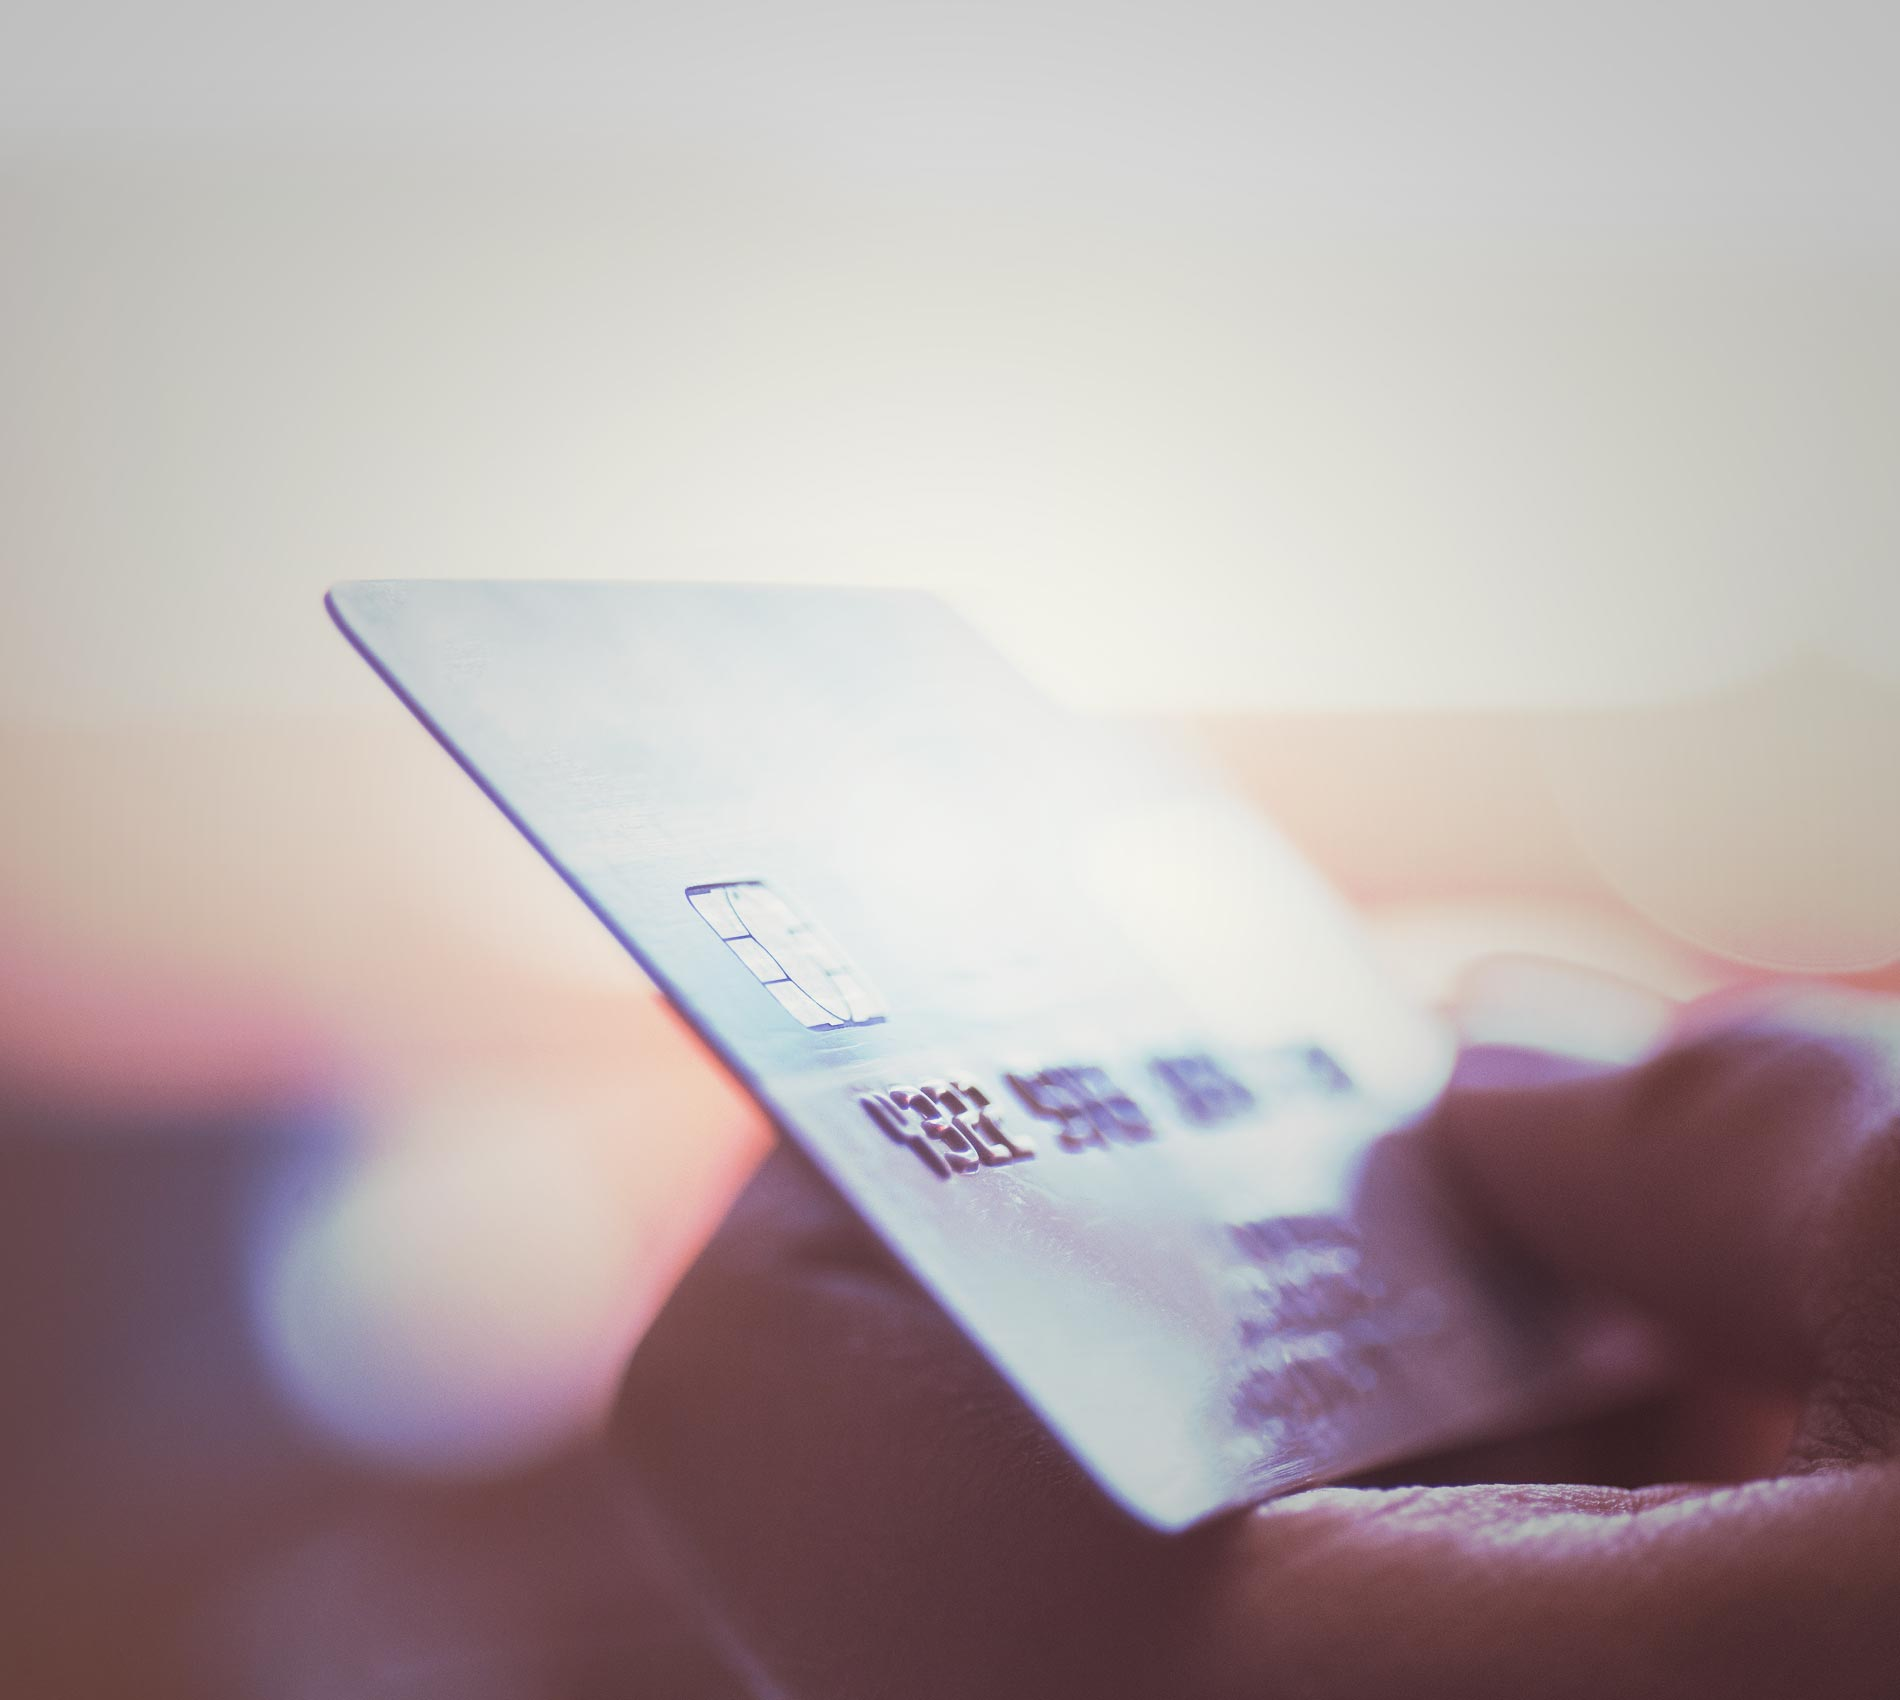 Understanding chargeback and consumer rights in Brazil